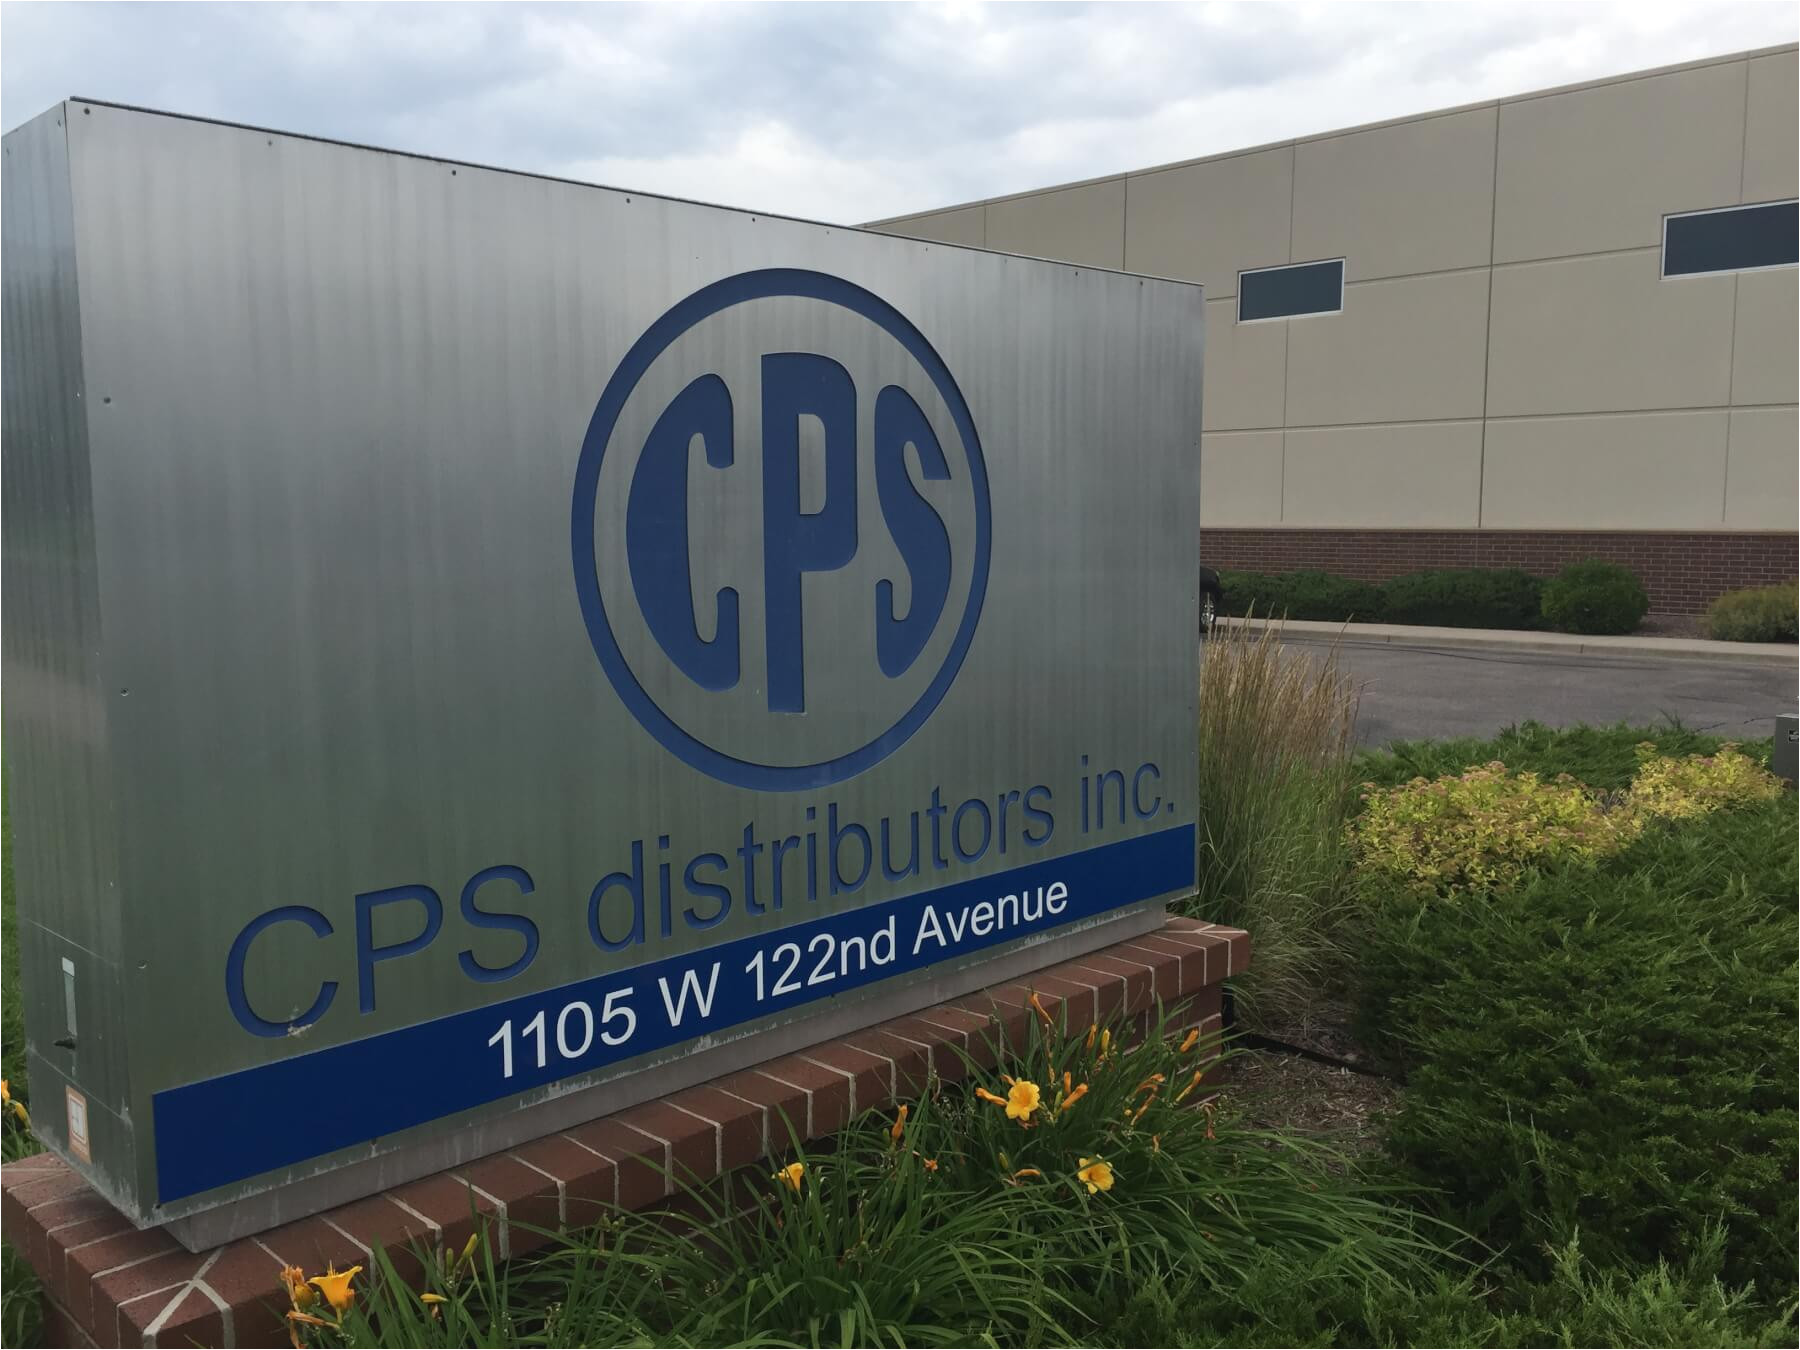 cps distributors landscape irrigation supply in westminster co